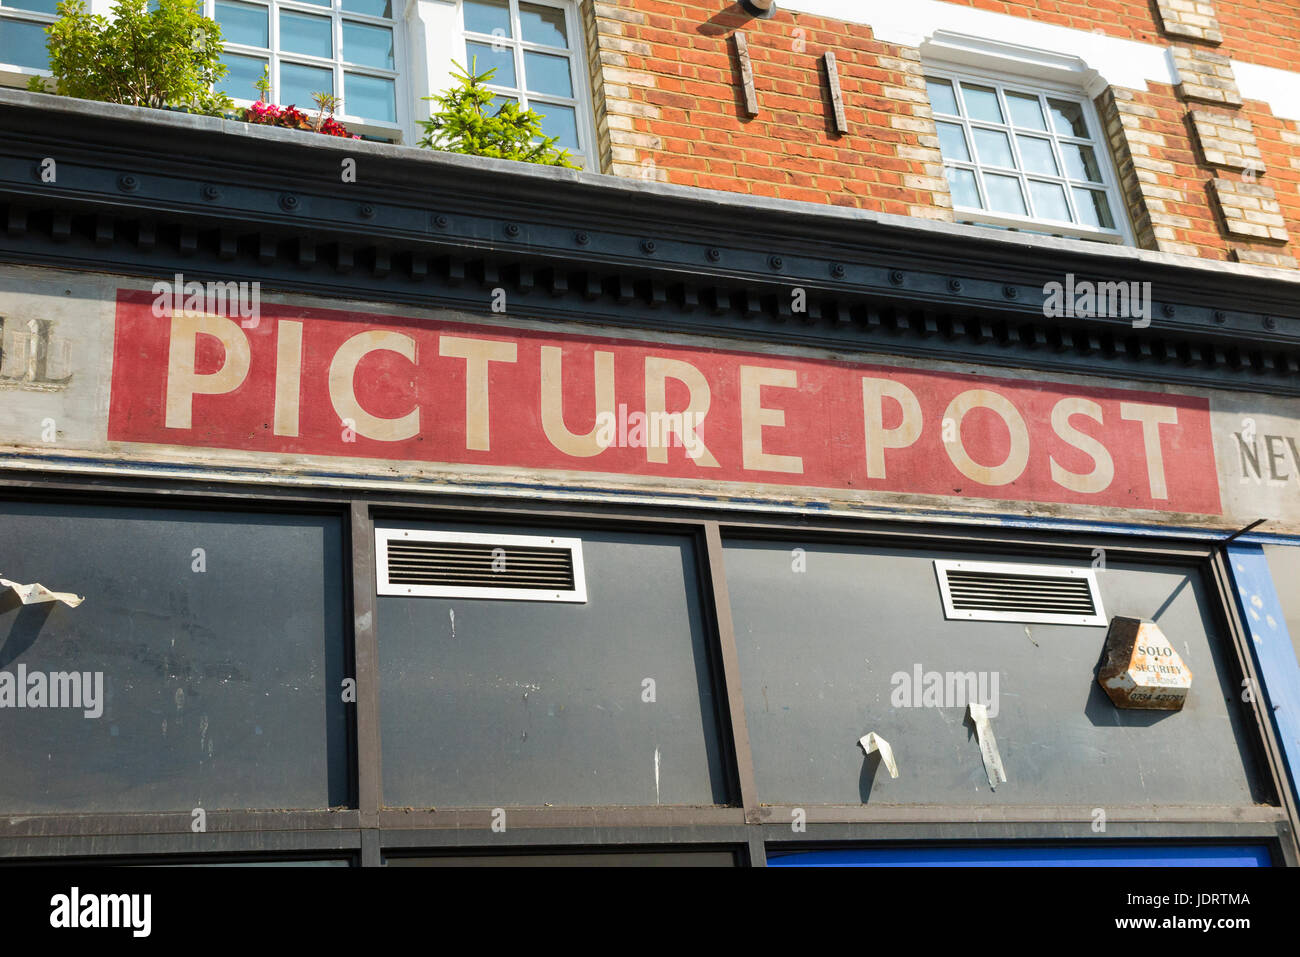 Picture post magazine mast-head logo / advert advertised on a shop which is being refurbished, so revealing the - Stock Image